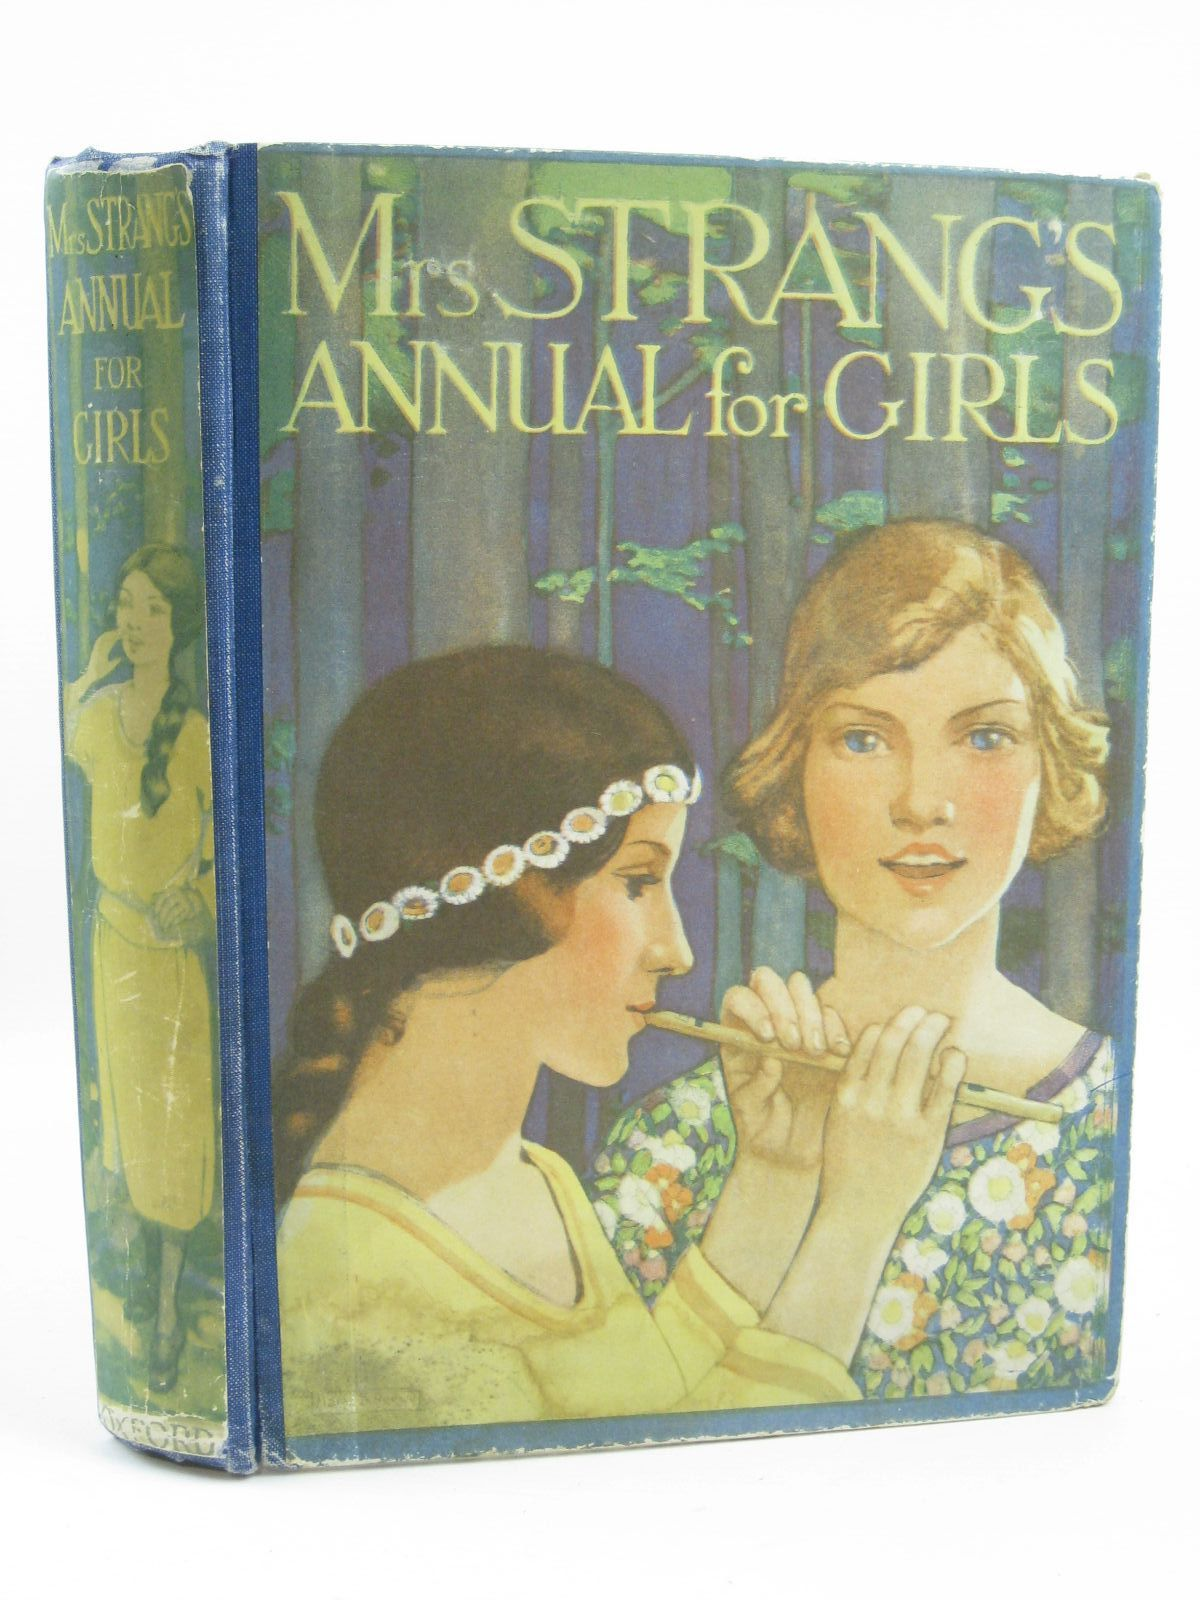 Photo of MRS. STRANG'S ANNUAL FOR GIRLS written by Francklyn, Phillippa Stowell, Thora Bruce, Dorita Fairlie Darch, Winifred et al, illustrated by Elcock, Howard K. Reeve, Mary Strange Johnston, M.D. Peart, M.A. et al., published by Humphrey Milford, Oxford University Press (STOCK CODE: 1506885)  for sale by Stella & Rose's Books